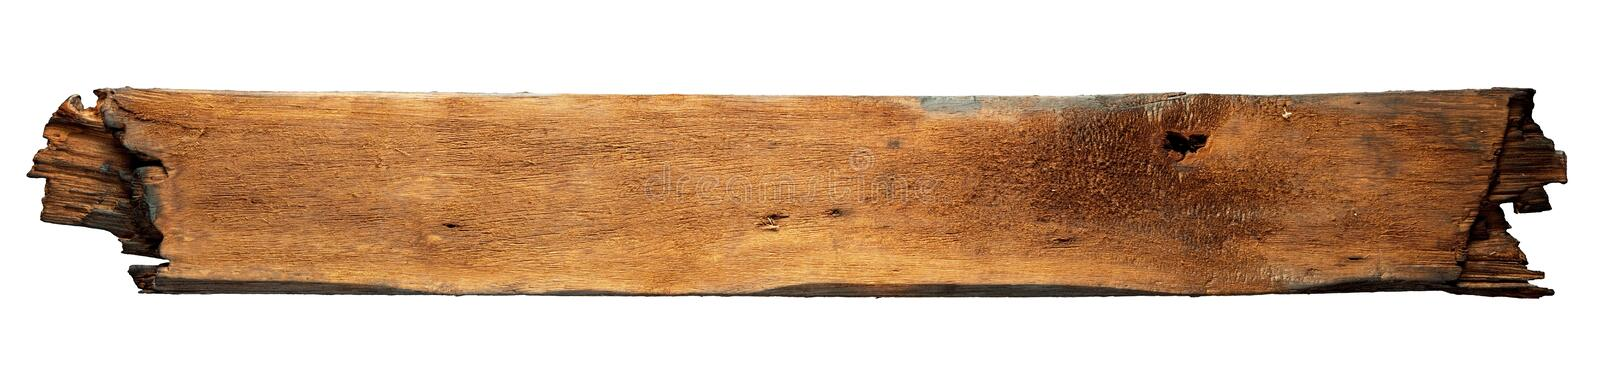 Download Charred wood board stock photo. Image of firewood, wooden - 15233800